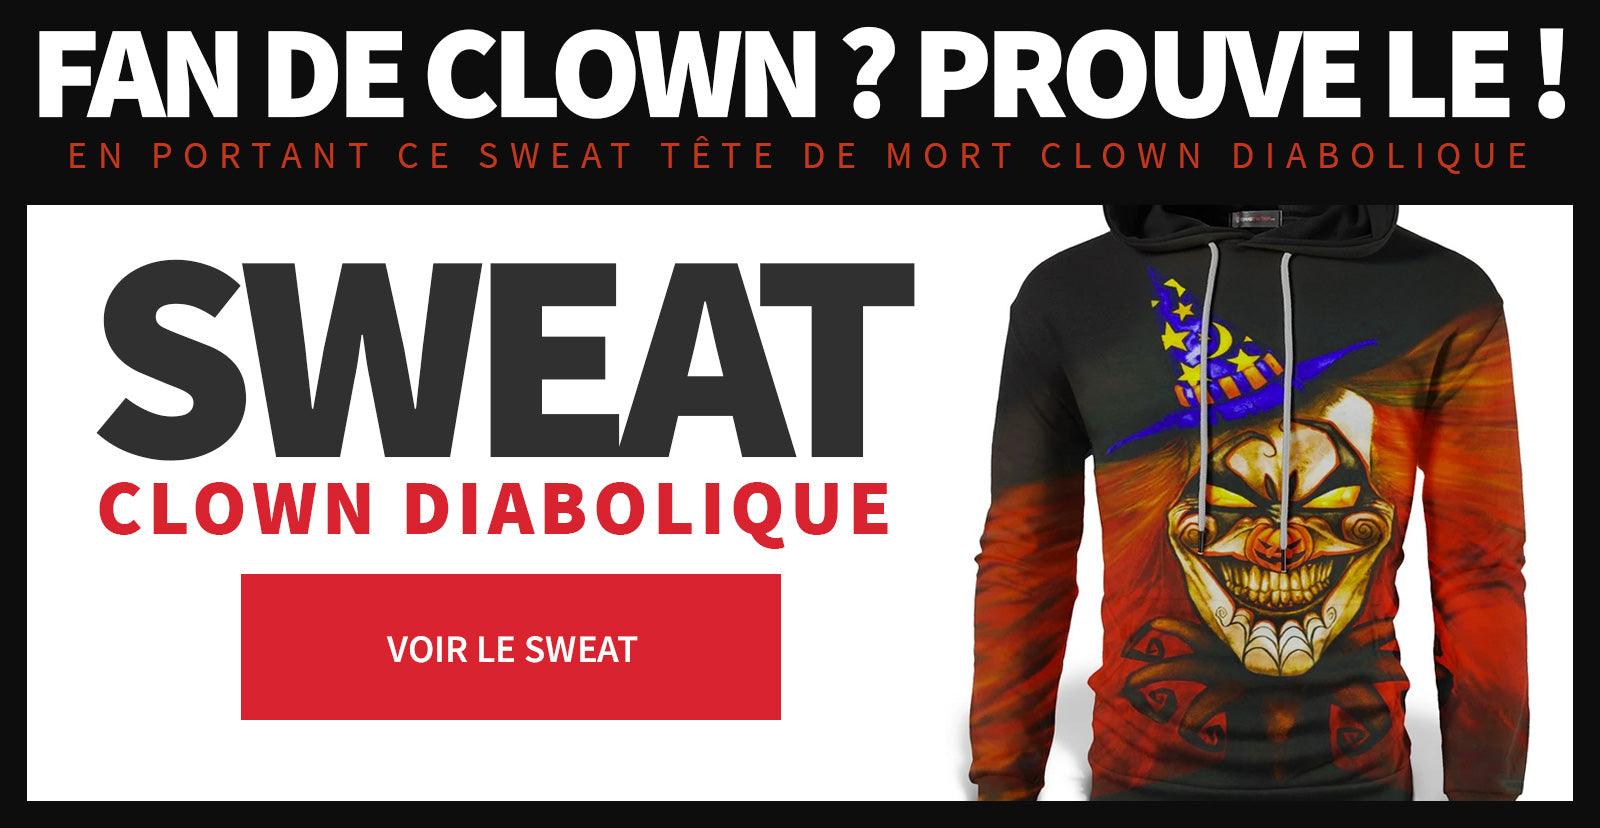 Sweat clown